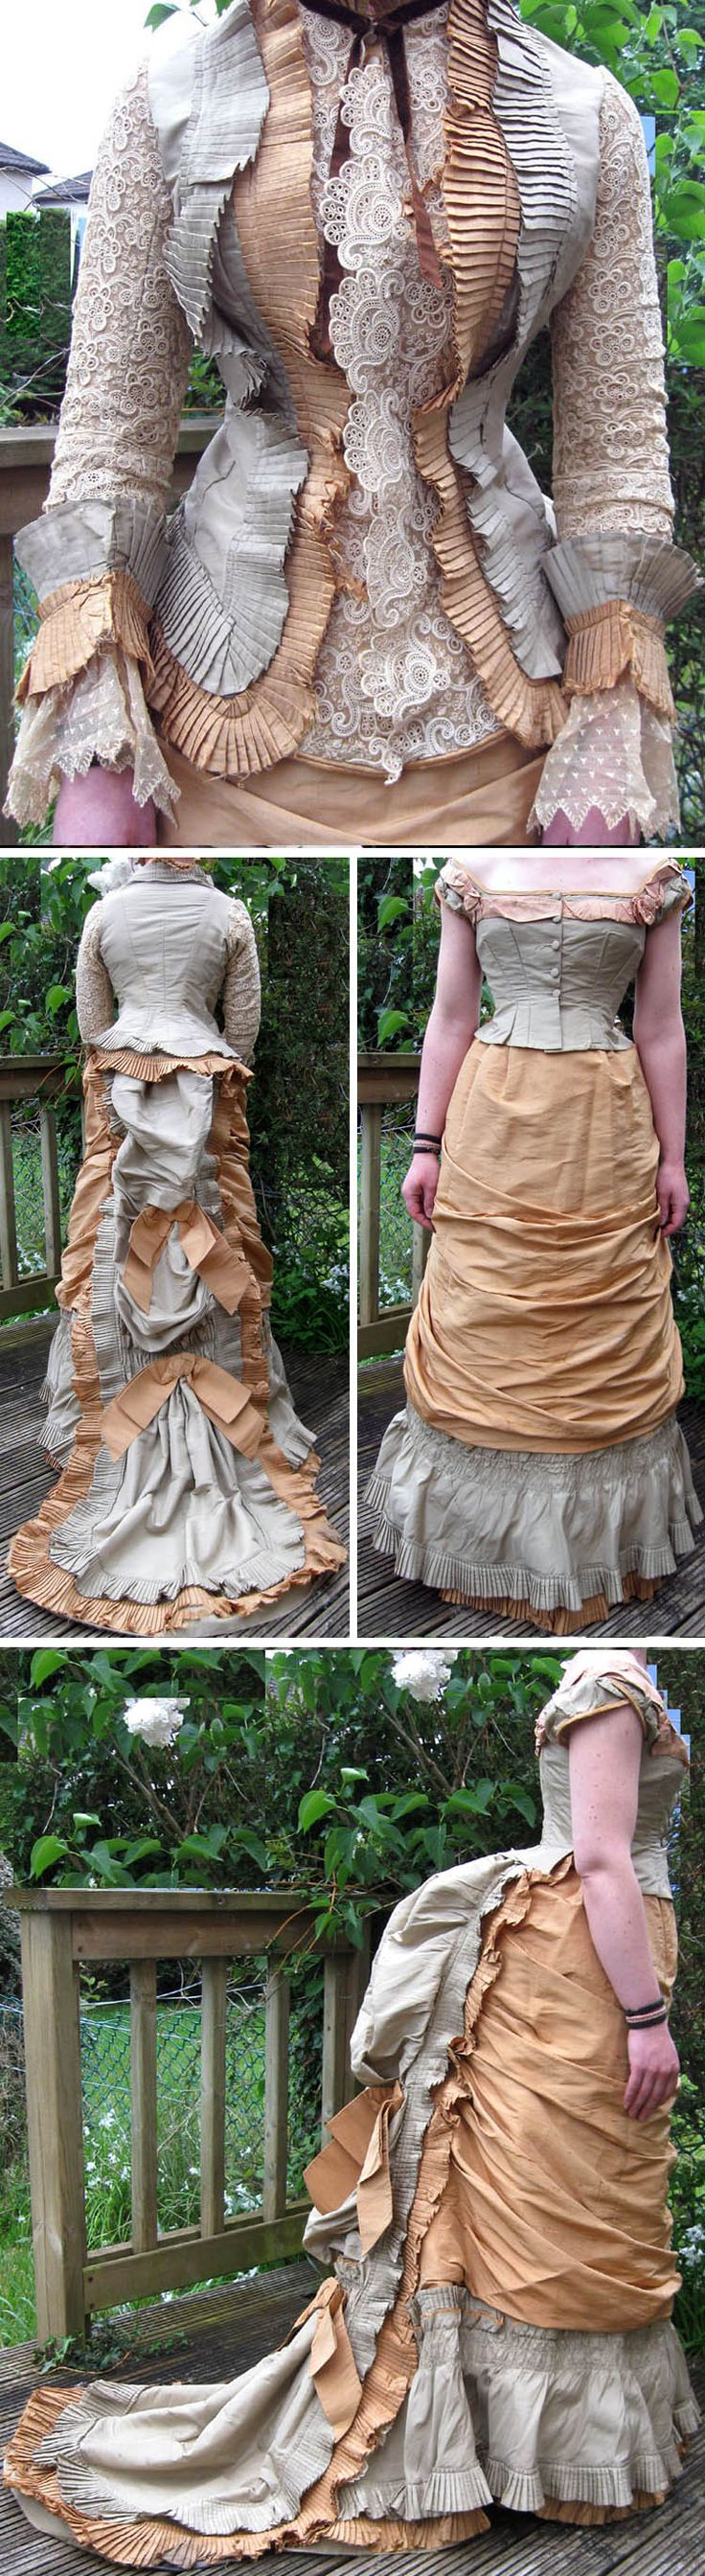 """Three-piece gown ca. 1878. Greenish-gray & beige/sandy-colored silk w/machine-made(?), cream-colored lace and silk & velvet bows. Lined w/cream/beige-colored cotton. Day bodice, not boned, has knife-pleated ruffles, long lace sleeves w/wide cuffs. Front button closure. Evening bodice (unboned) has light pink silk trim. Over-the-shoulder cut; closes in front. Skirt has draped apron-style front, bustle back, 21"""" long train, & knife-pleated ruffles on hem & train. madaboutfans/ebay via Extant…"""